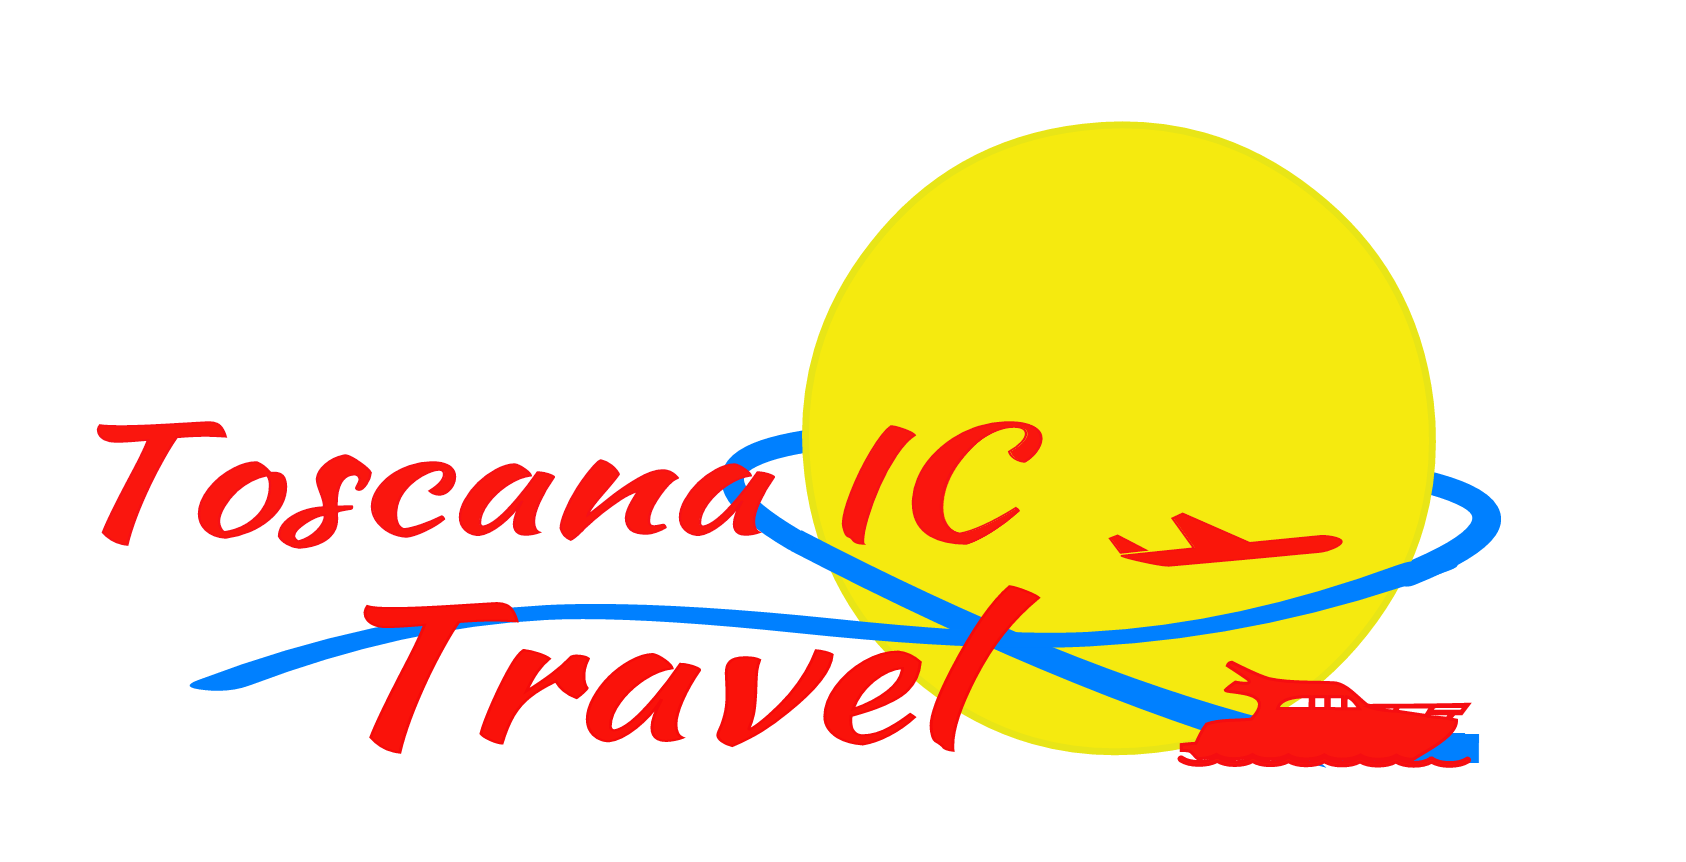 TOSCANA IC TRAVEL